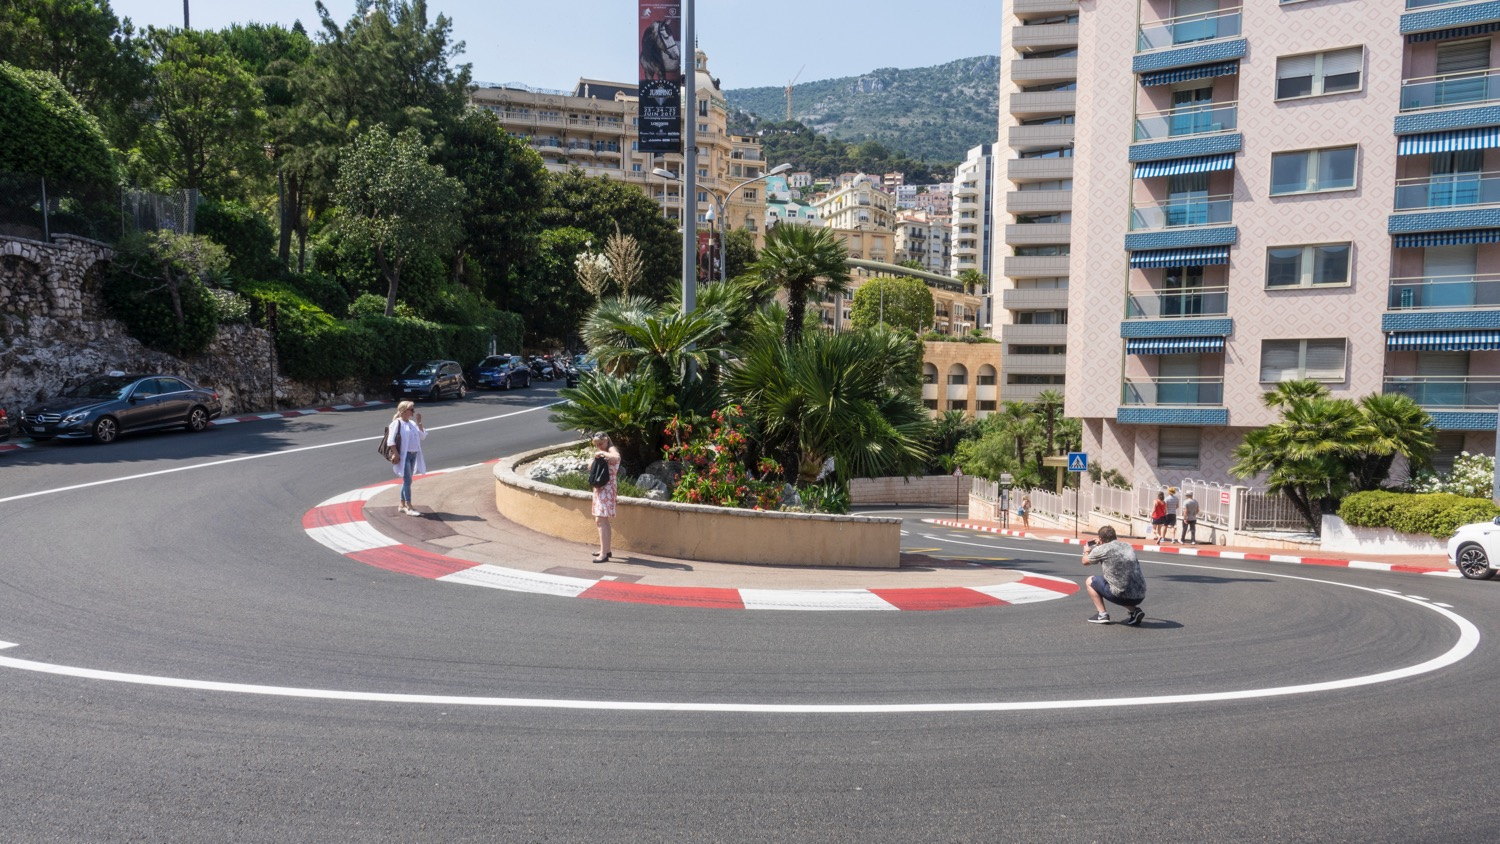 The iconic hairpin turn on the Formula 1 course